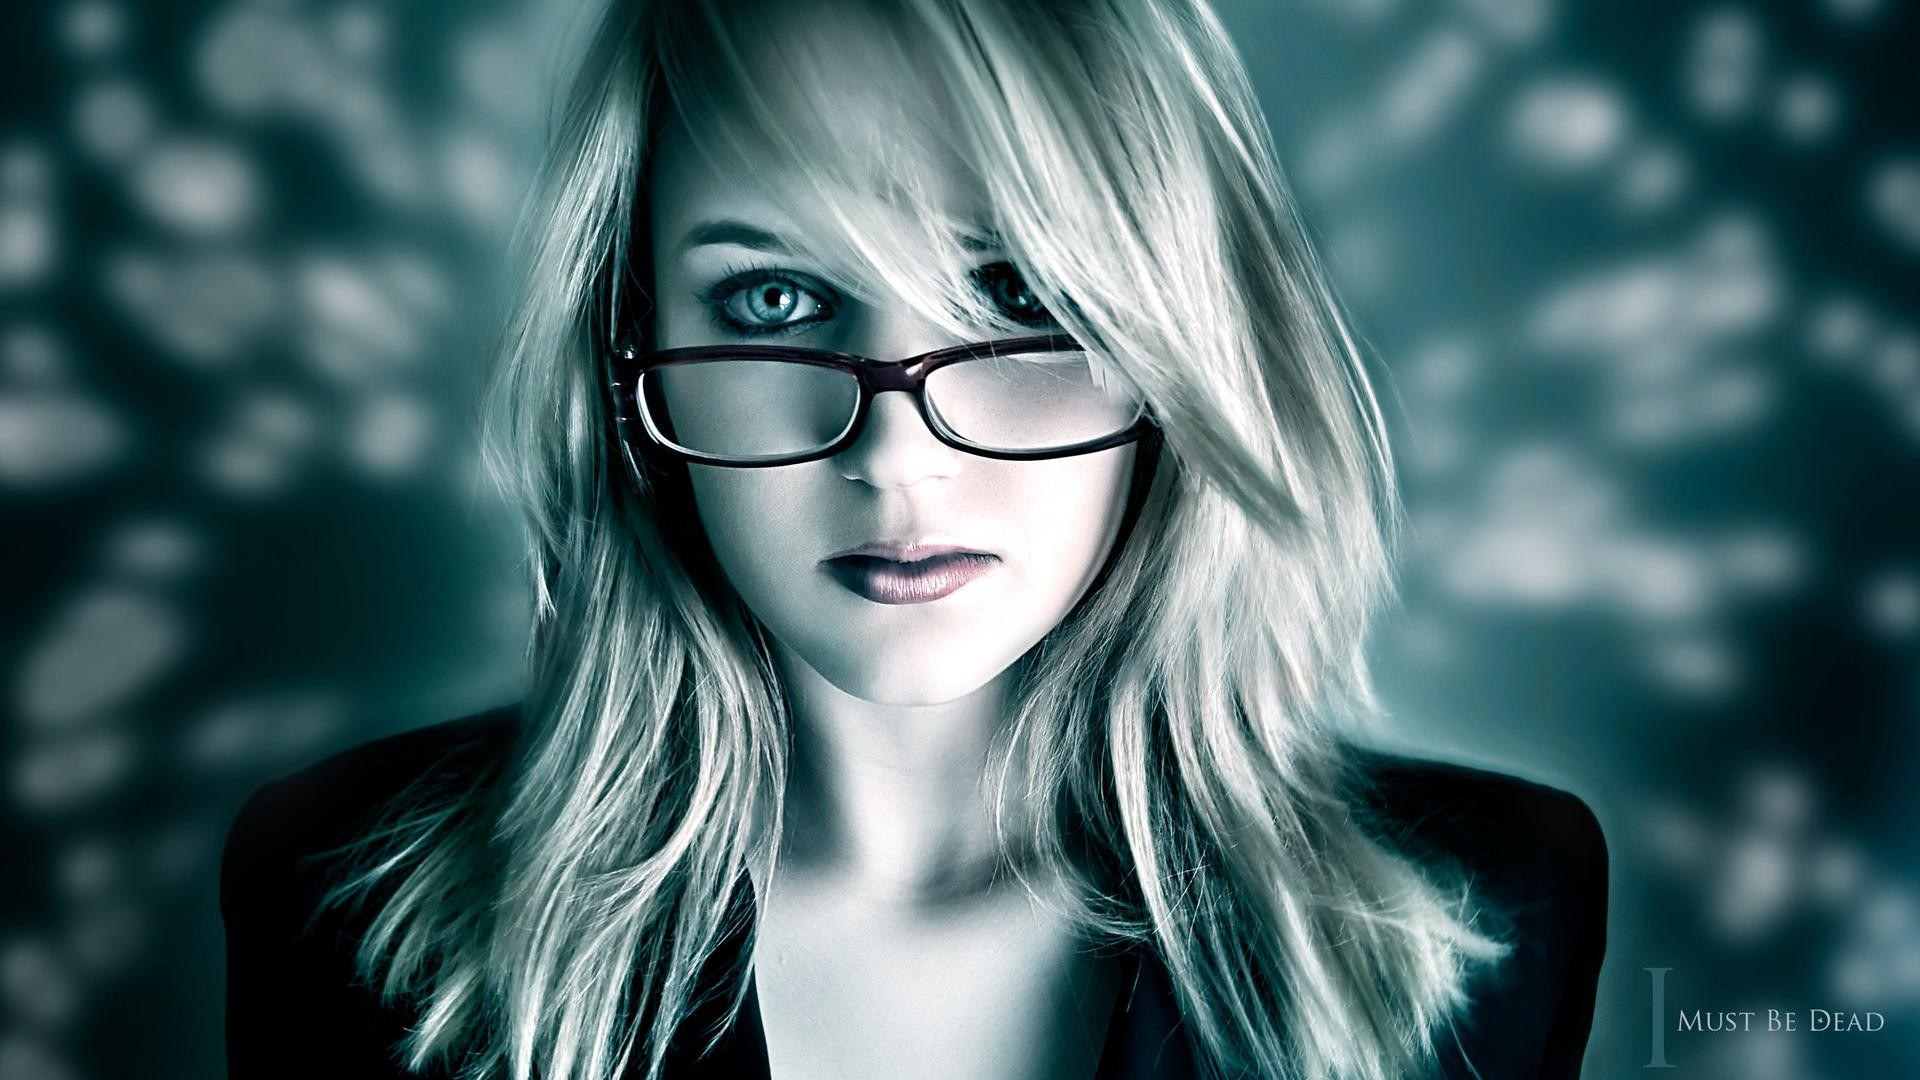 Girl In Glasses 38 Cool HD Wallpaper